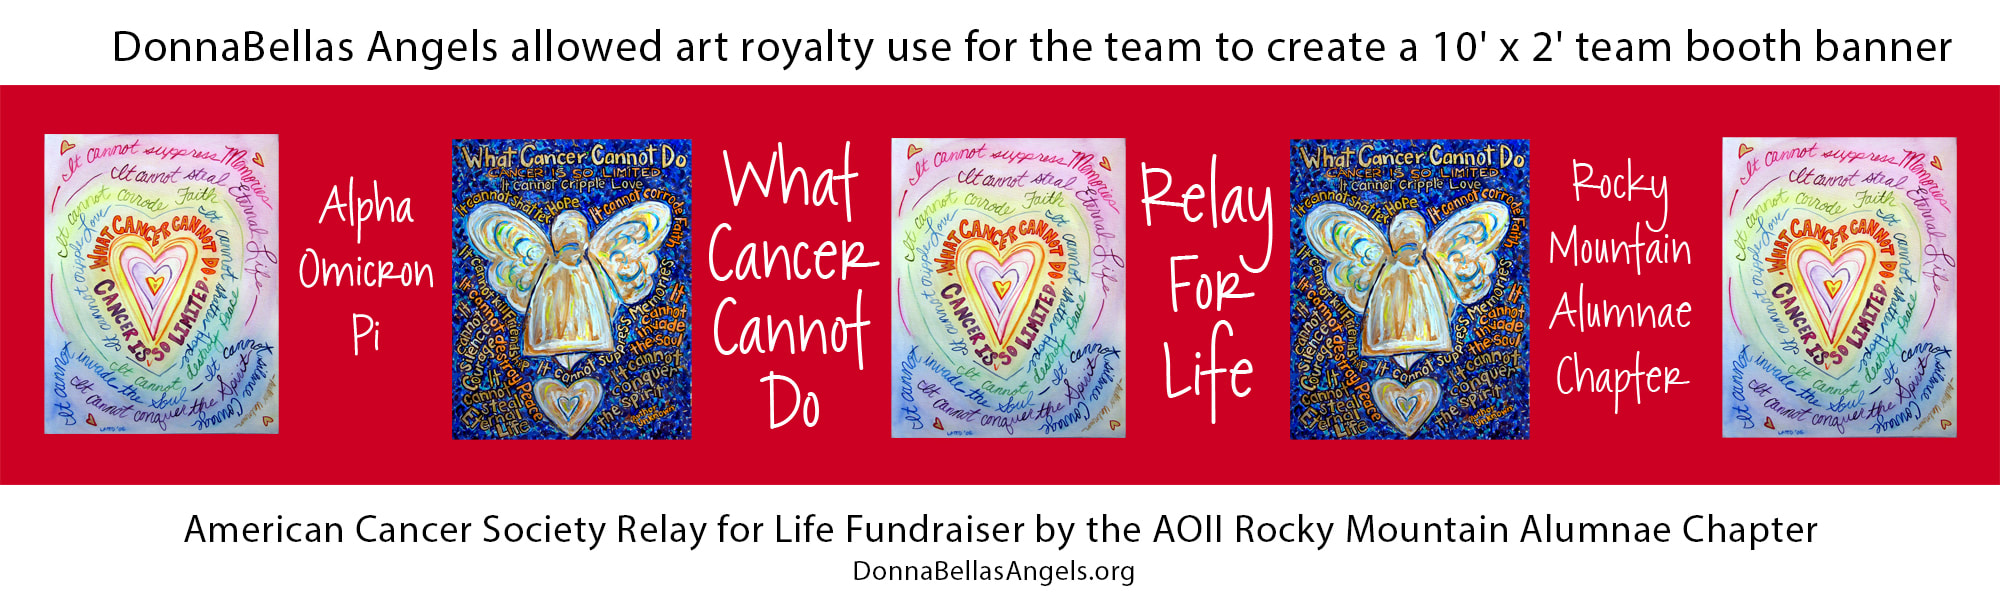 DonnaBellas Angels art donation for booth banner & luminaria tribute cards for Relay for Life cancer fundraiser by AOII Rocky Mountain Alumnae Chapter